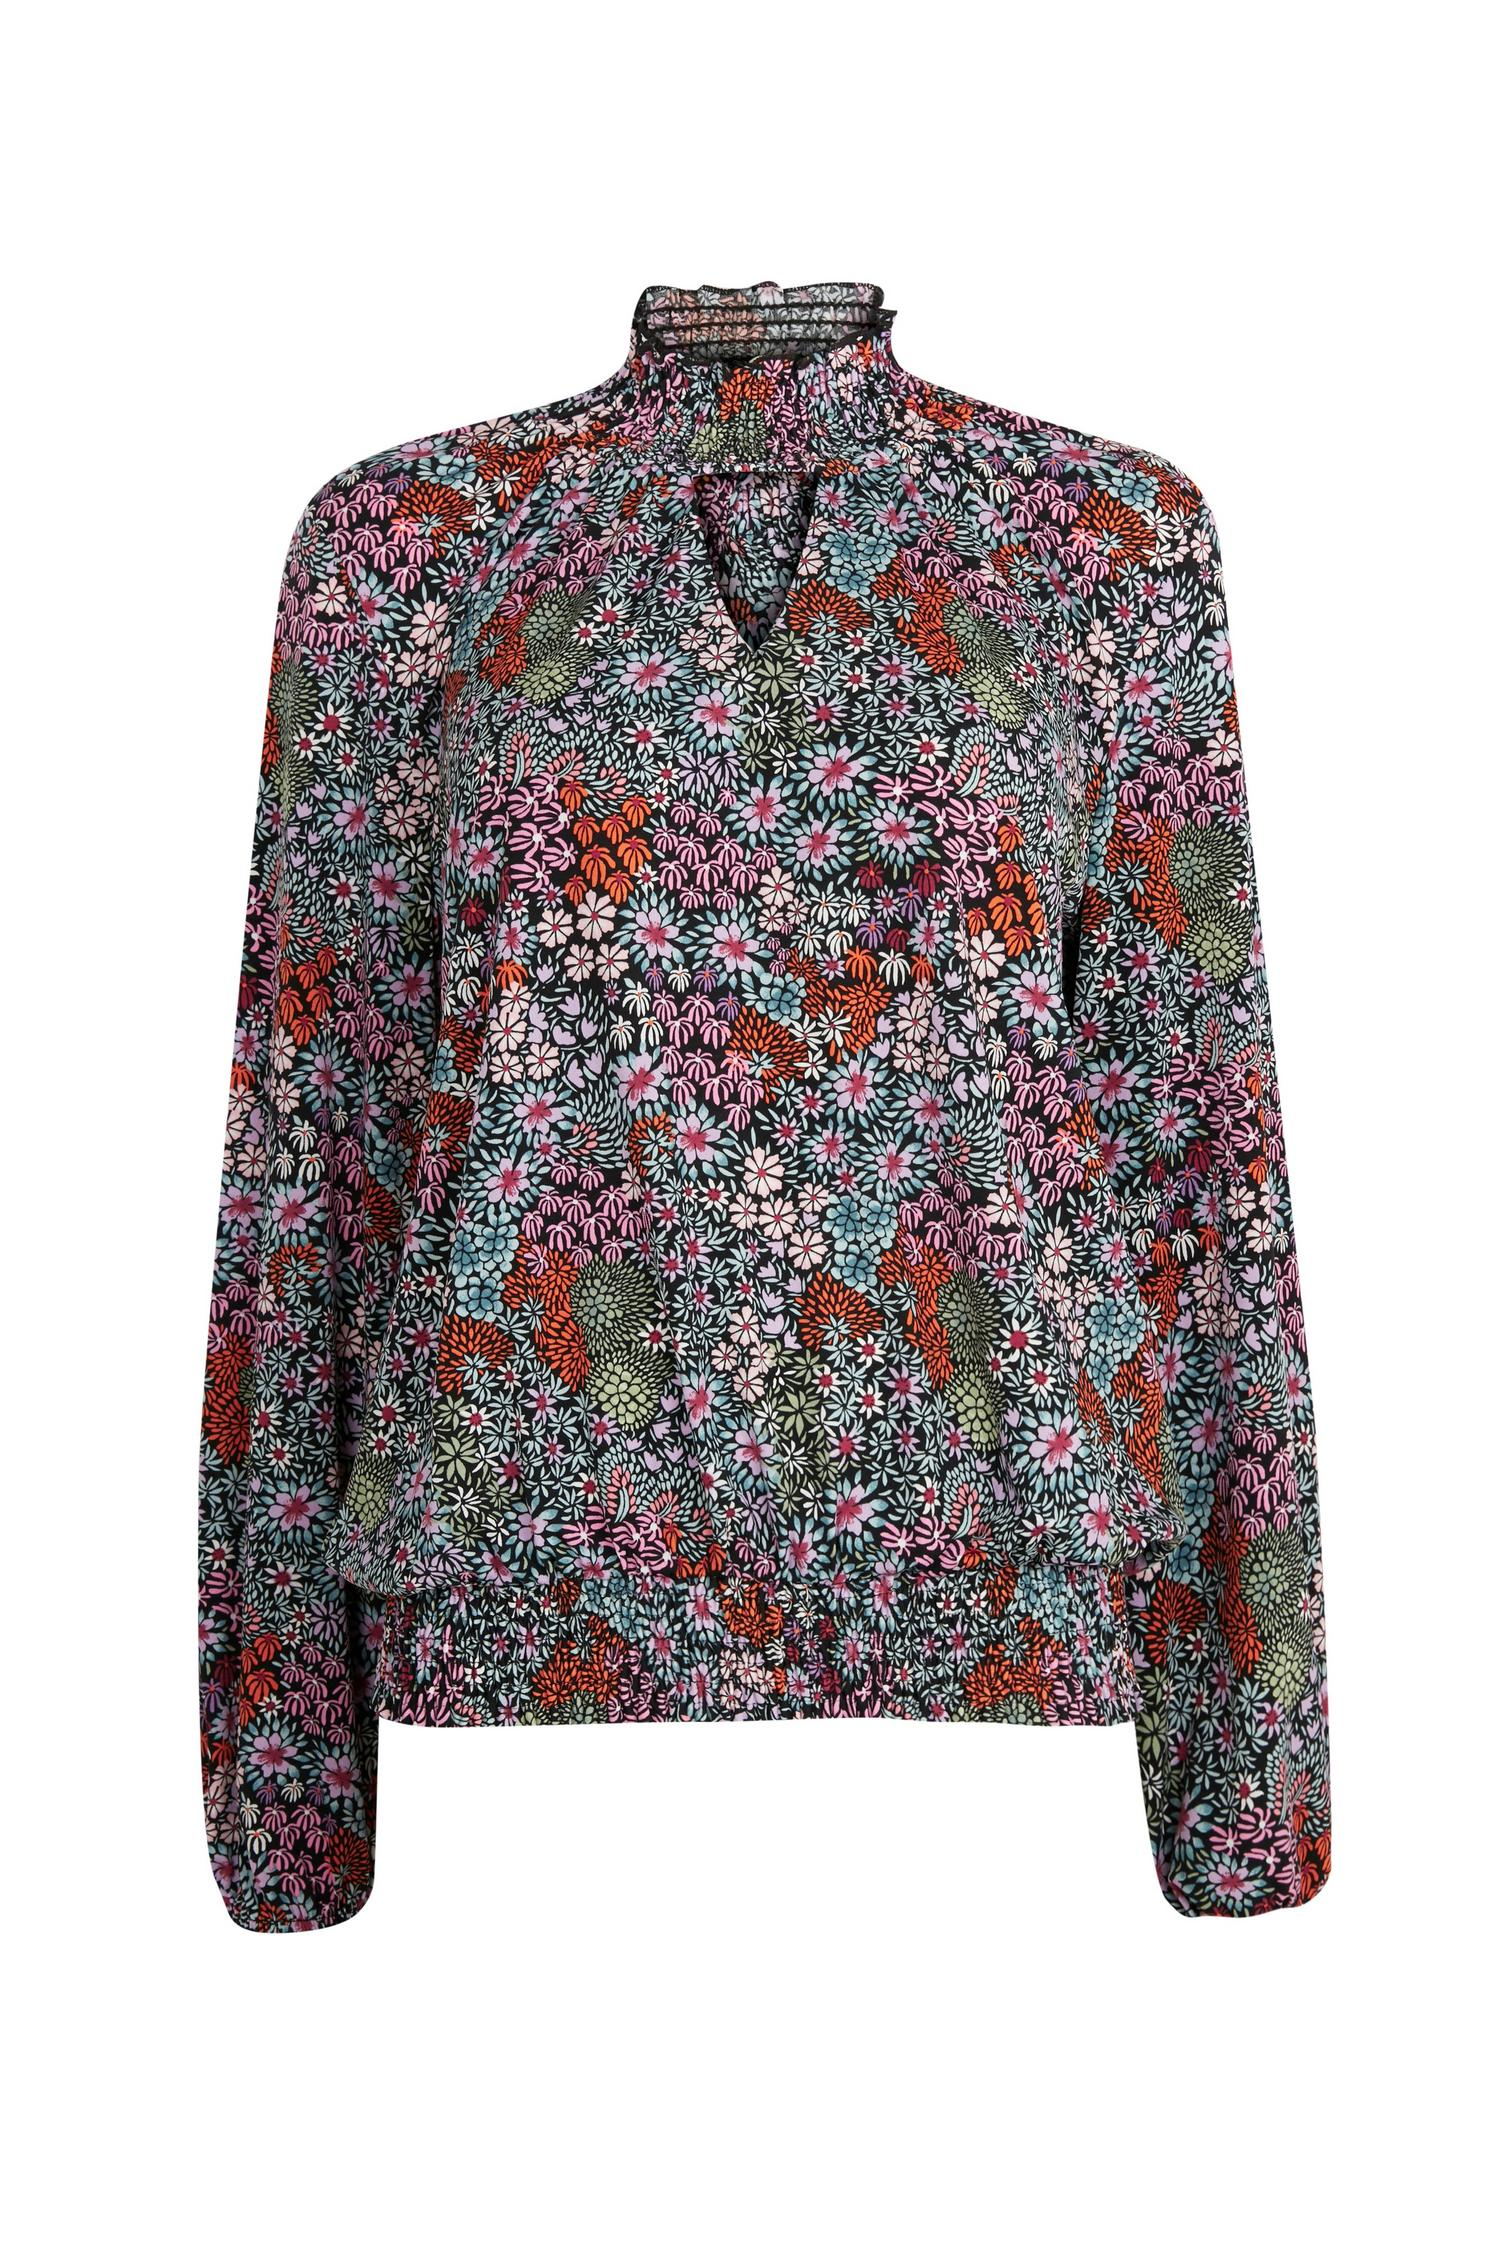 105 Black Floral Print High Neck Top image number 4